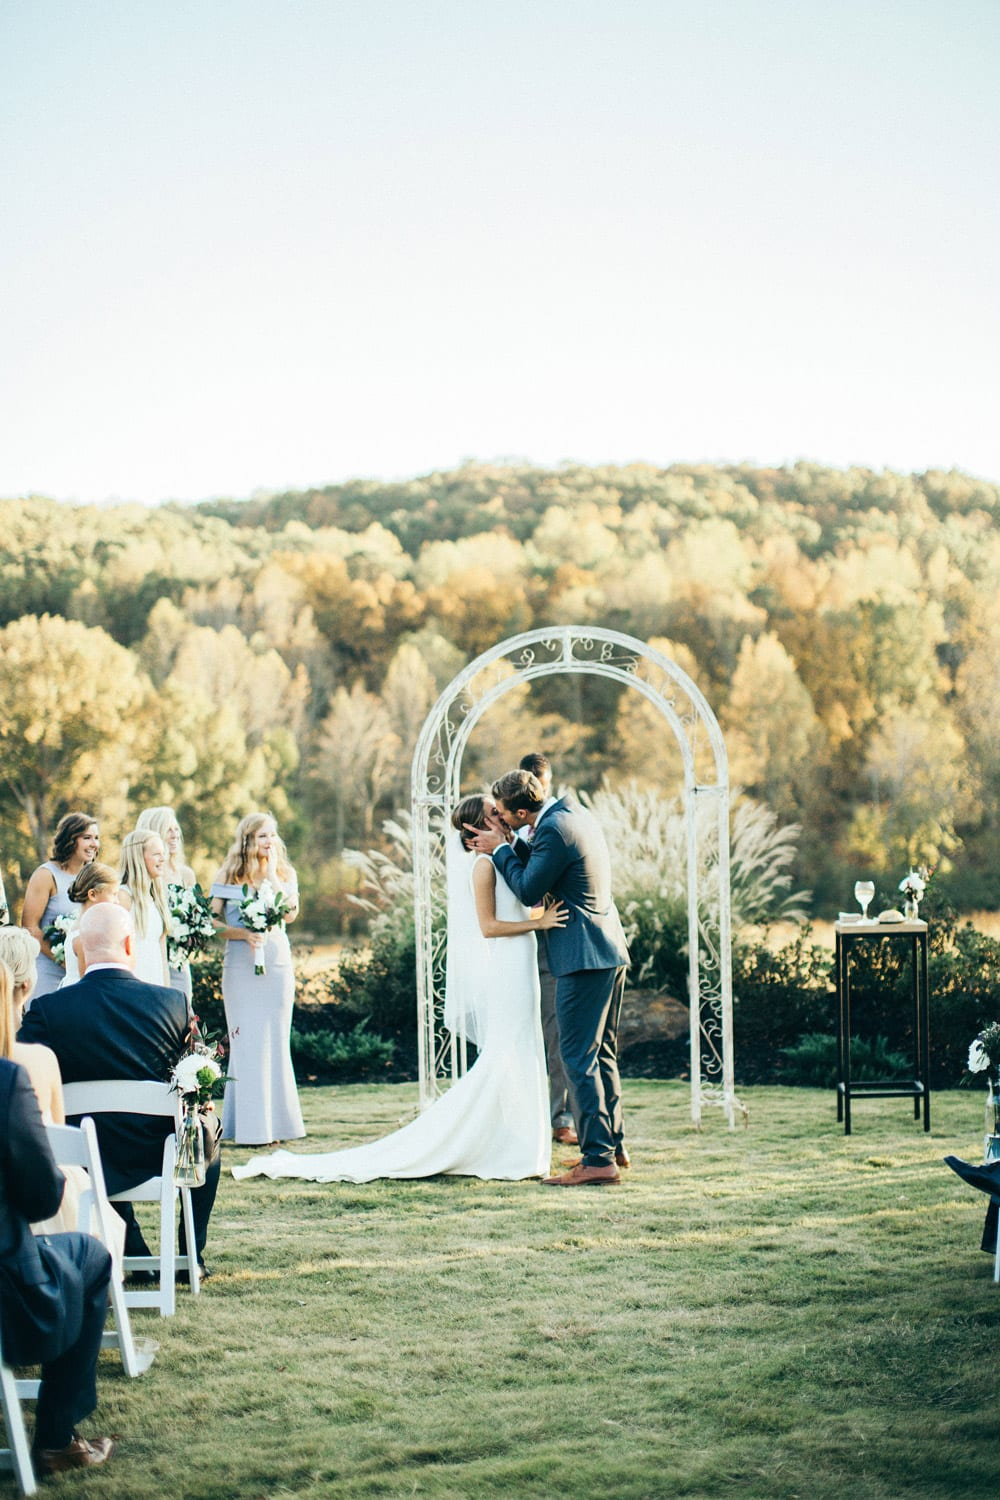 Bride and groom share first kiss during ceremony